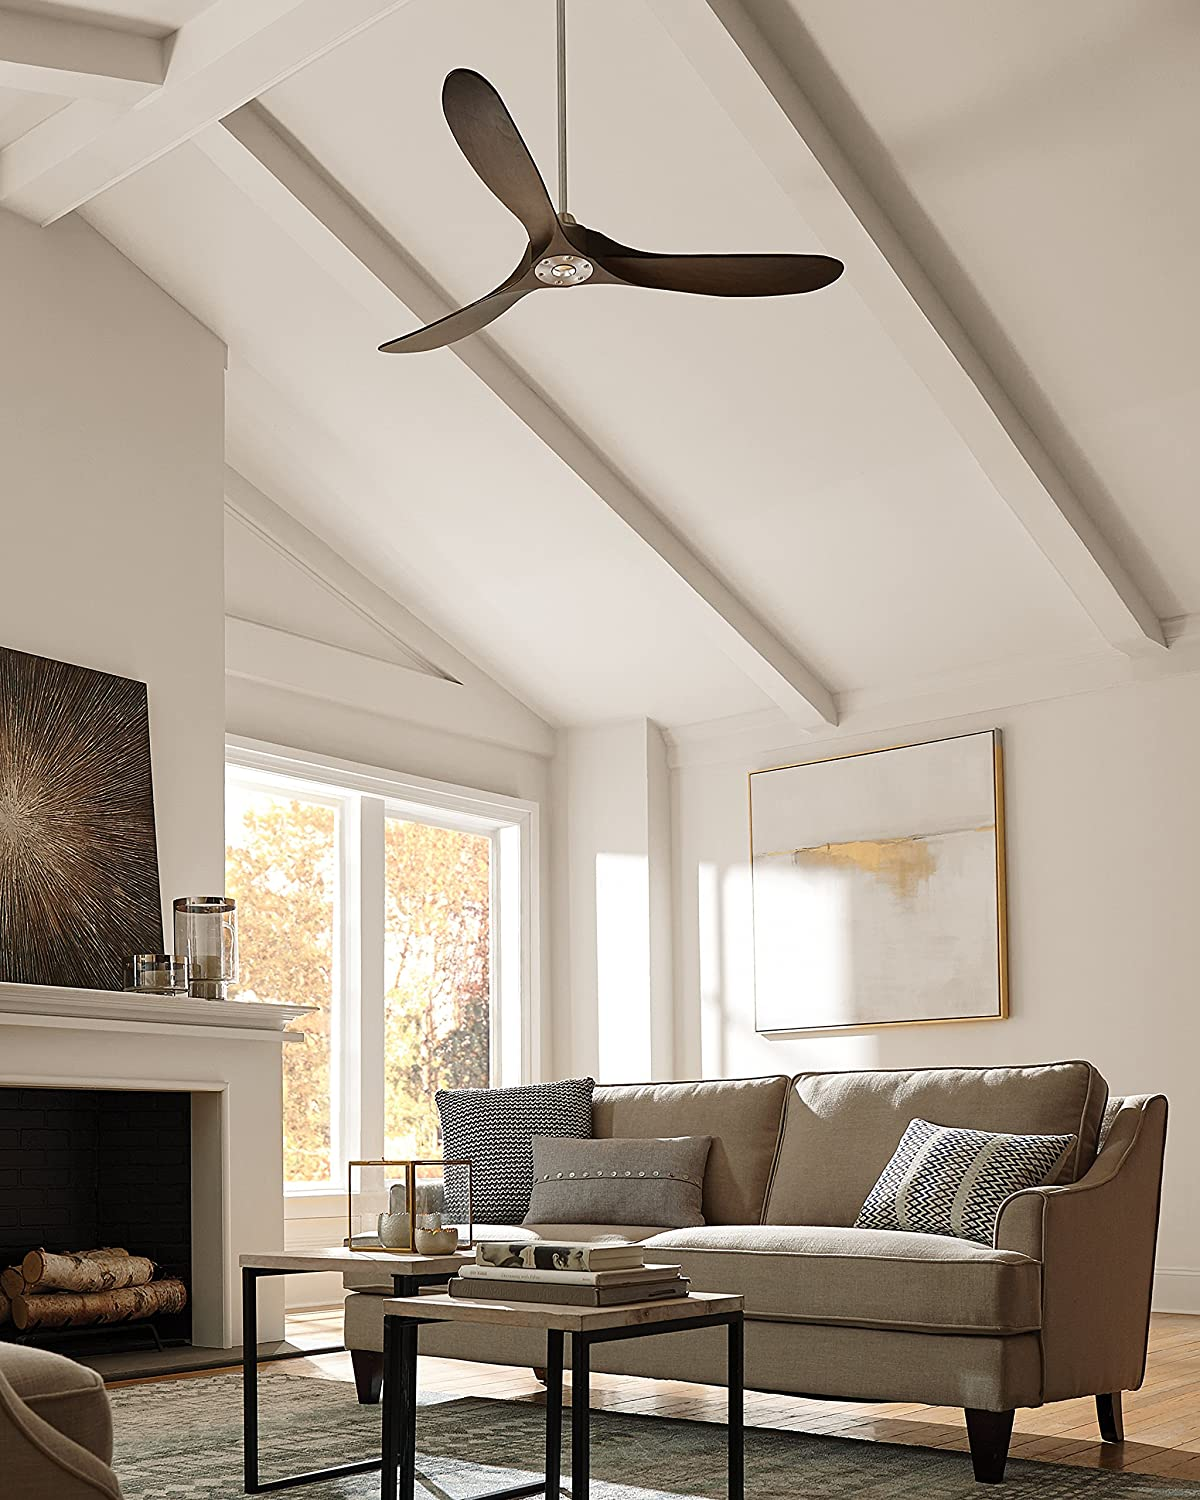 Monte Carlo 3mavr60bk Maverick Ceiling Fan With Remote 60 Inch Electric Install Page 4 Matte Black Dark Walnut Blades